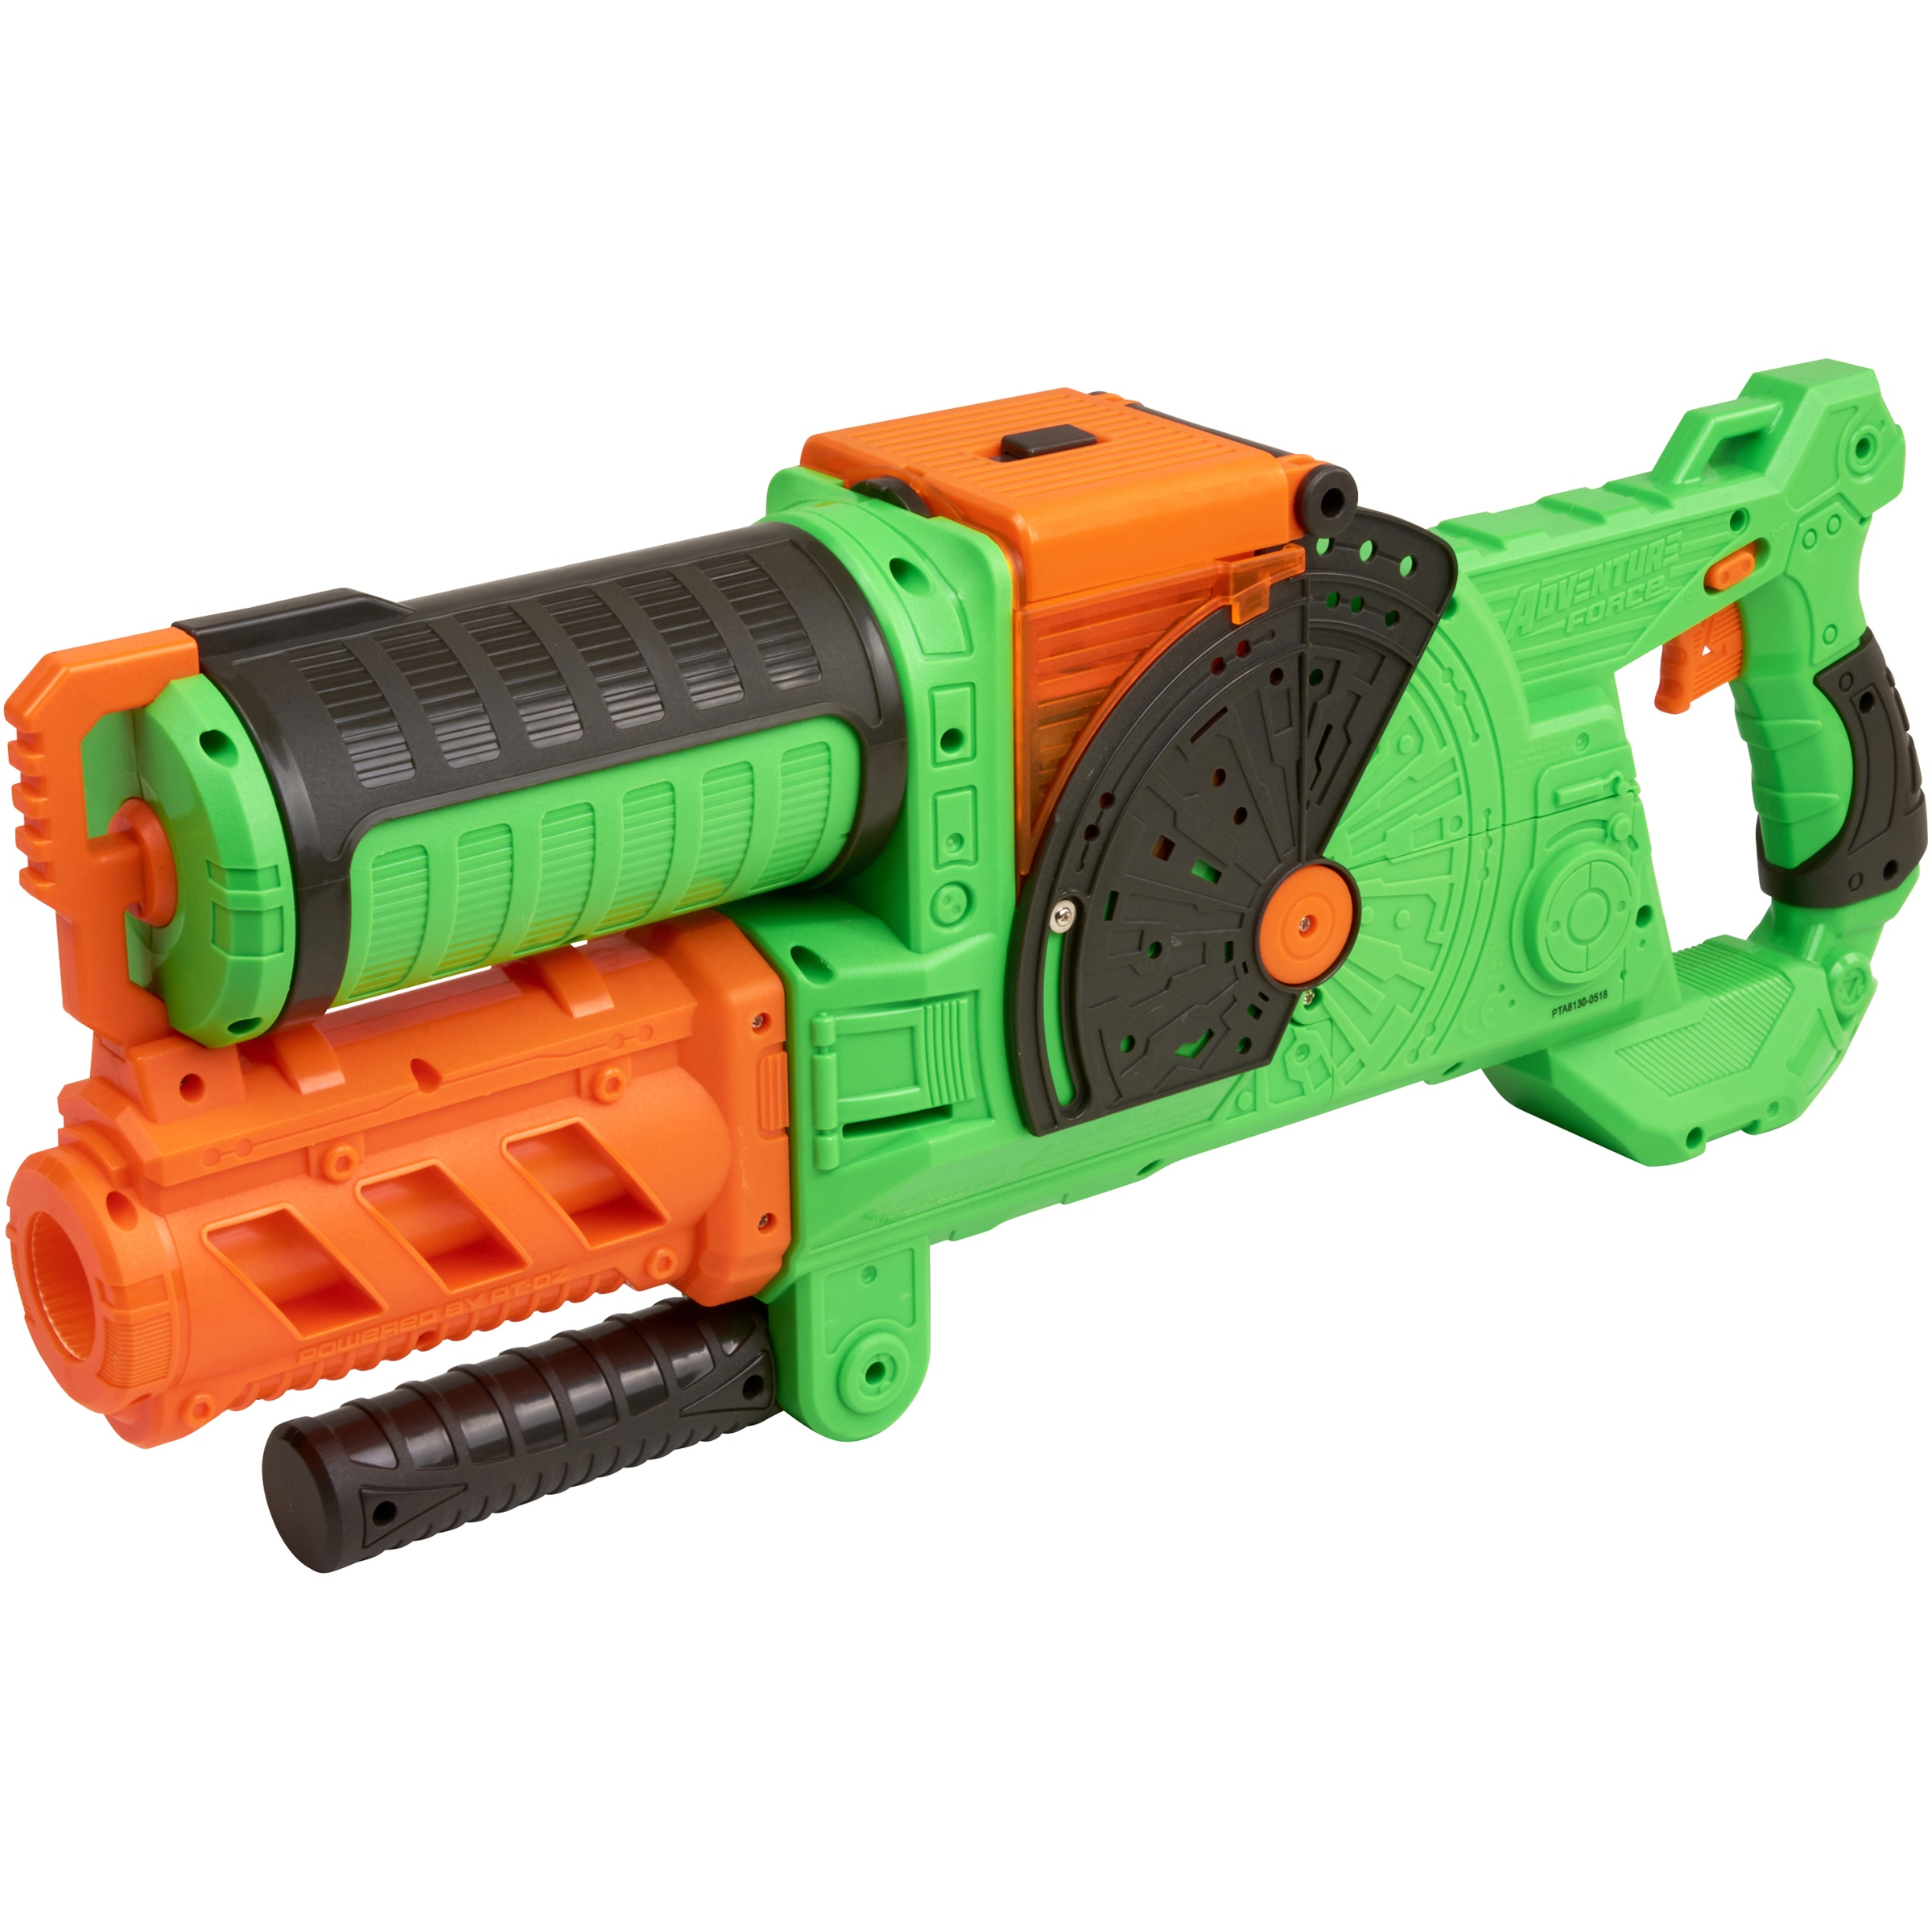 Adventure Force CommandFire Motorized Full-Auto Dart Blaster, Green